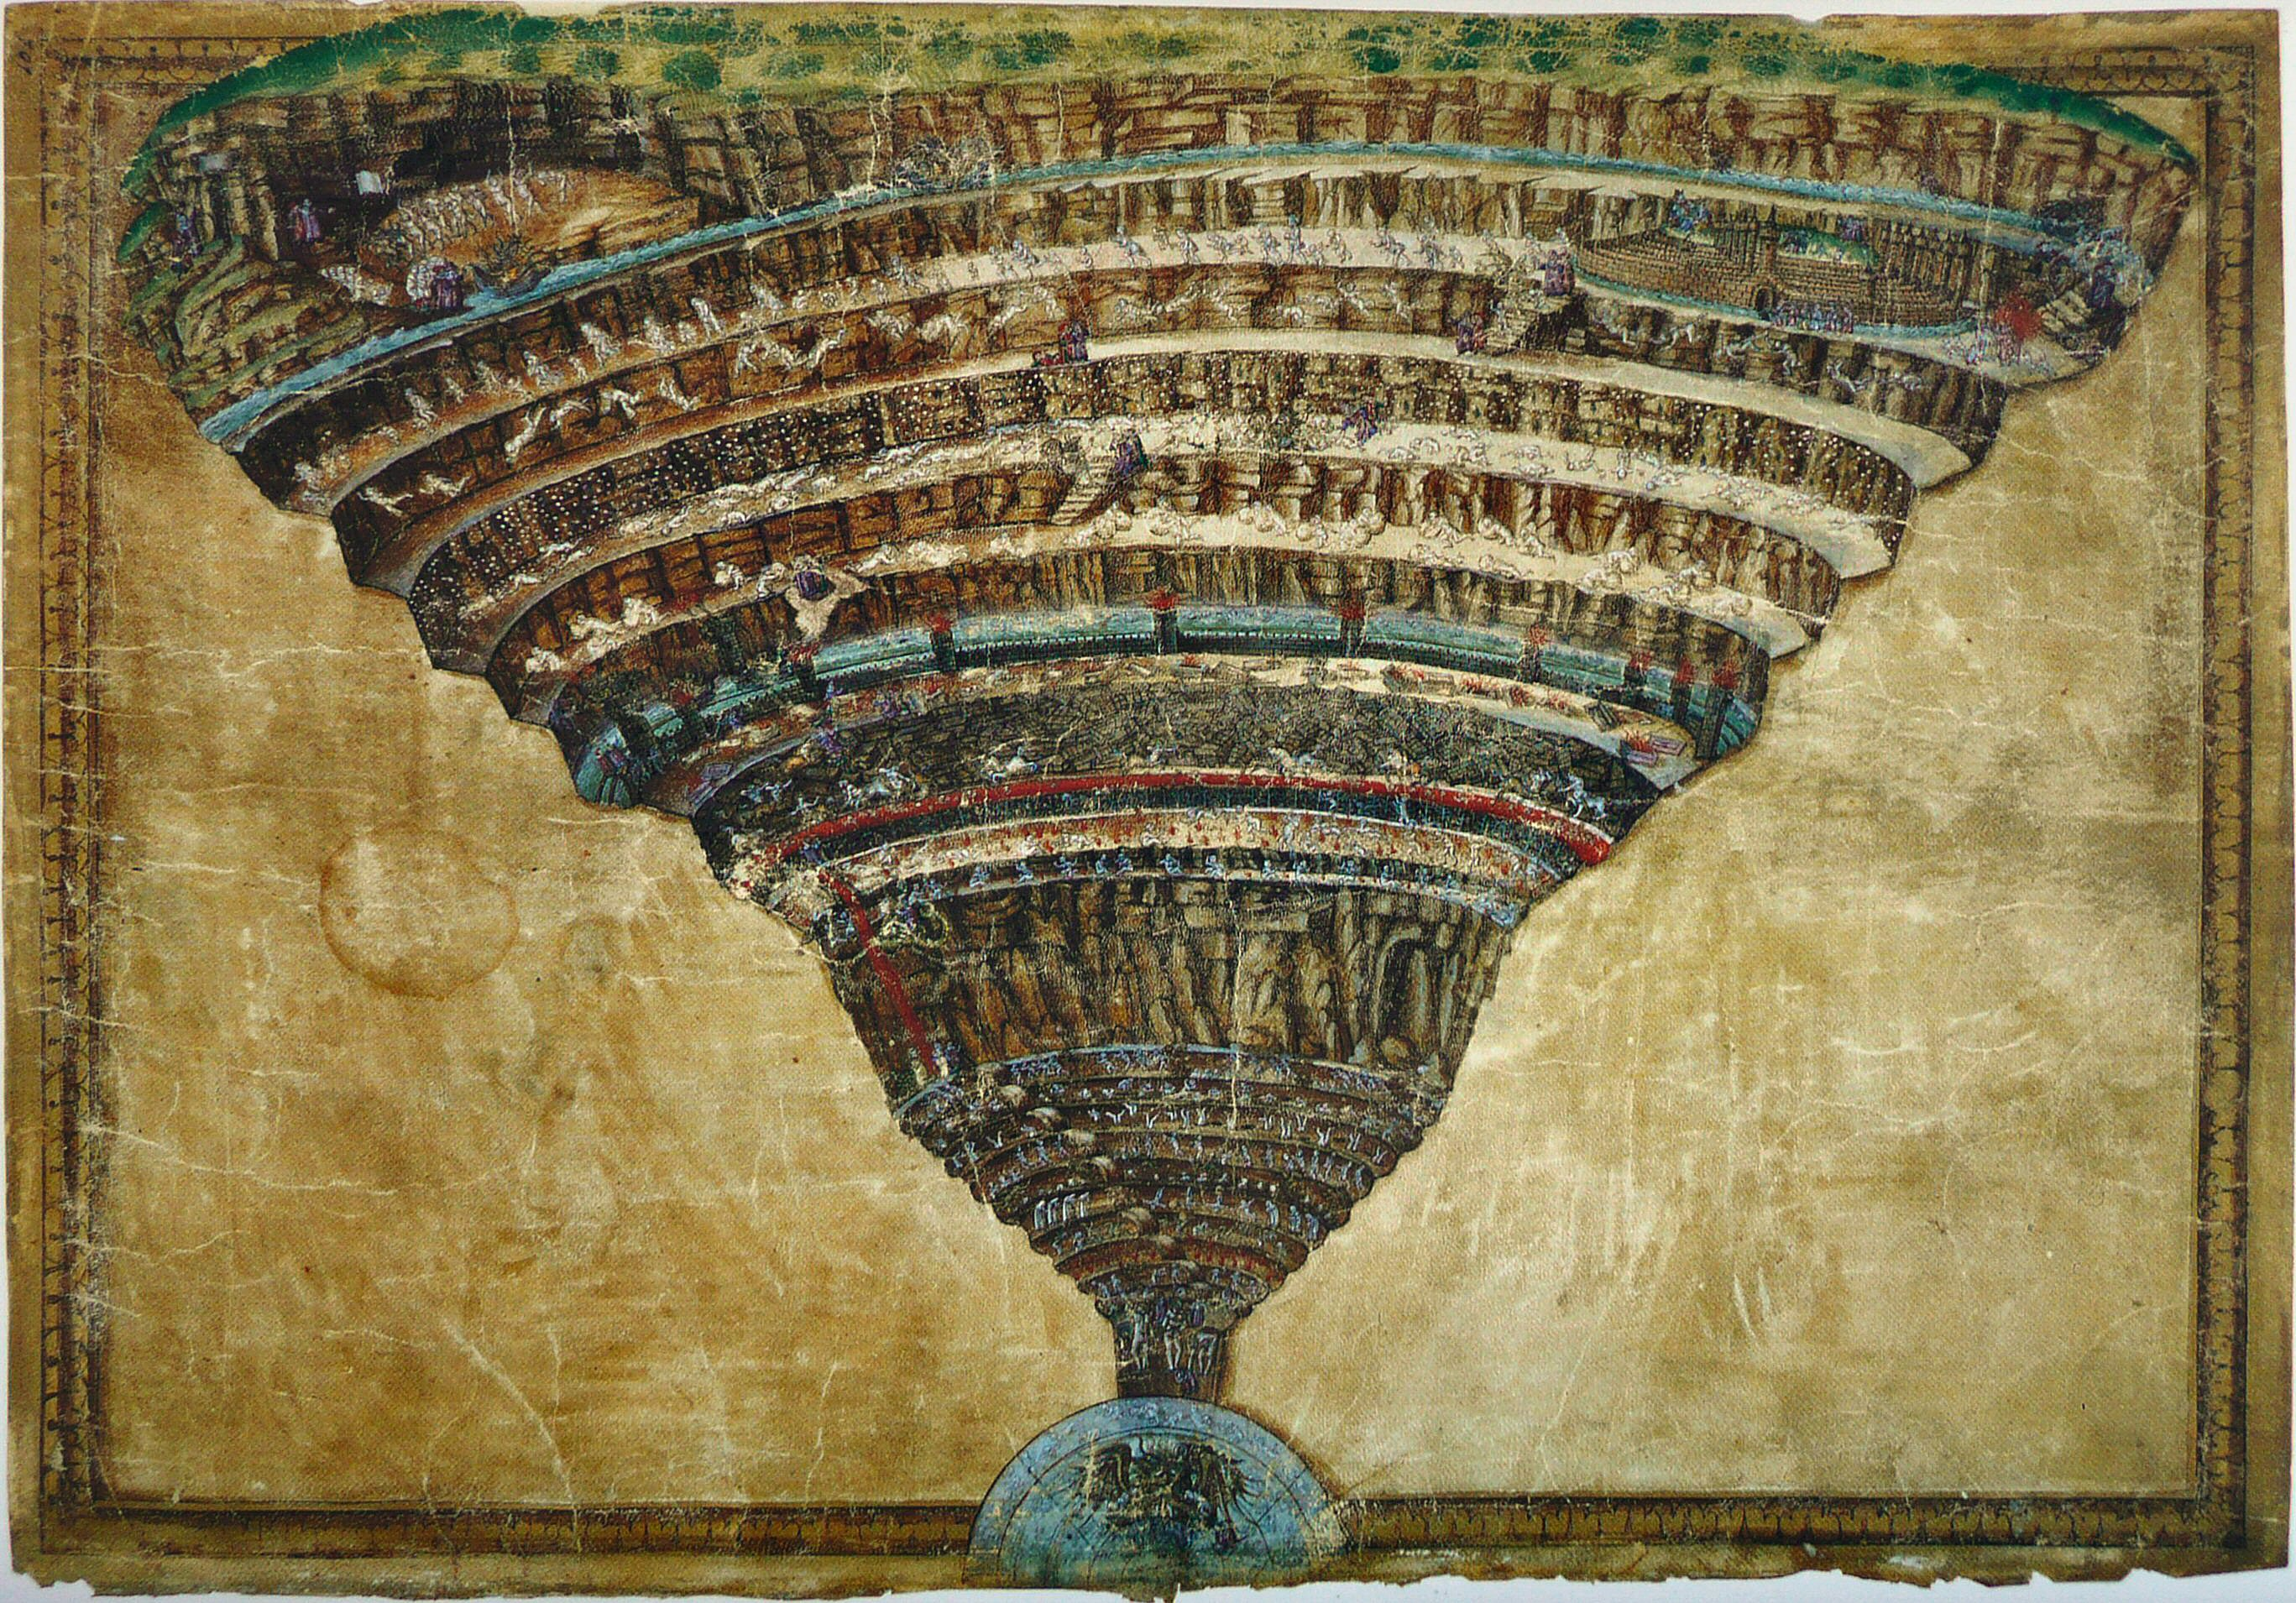 an analysis of symbolism of hell in inferno by dante Question: is the divine comedy / dante's inferno a biblically accurate description of heaven and hell answer: written by dante alighieri between 1308 and 1321, the divine comedy is widely considered the central epic poem of italian literature a brilliantly written allegory, filled with symbolism.